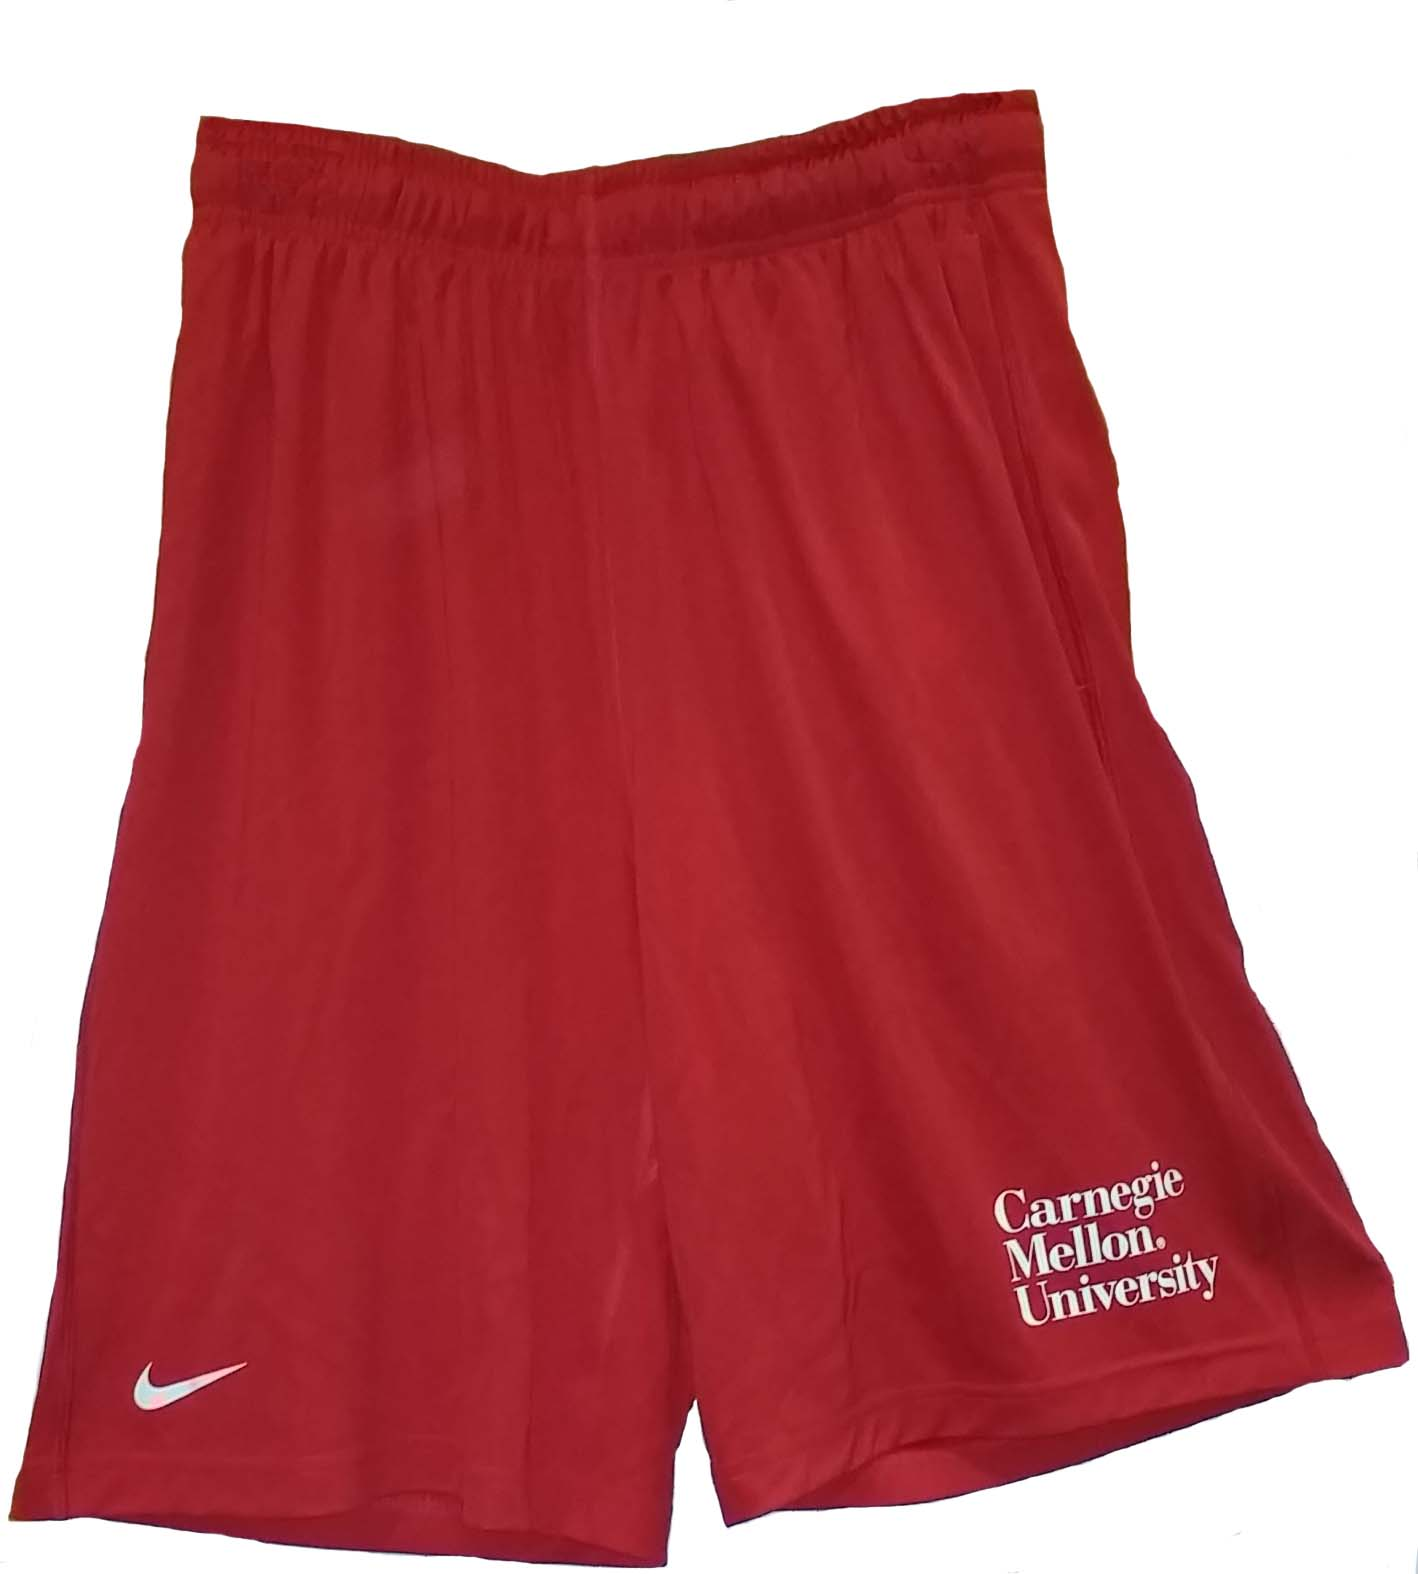 Nike Dri-Fit Athletic Shorts: Red | Carnegie Mellon Bookstore